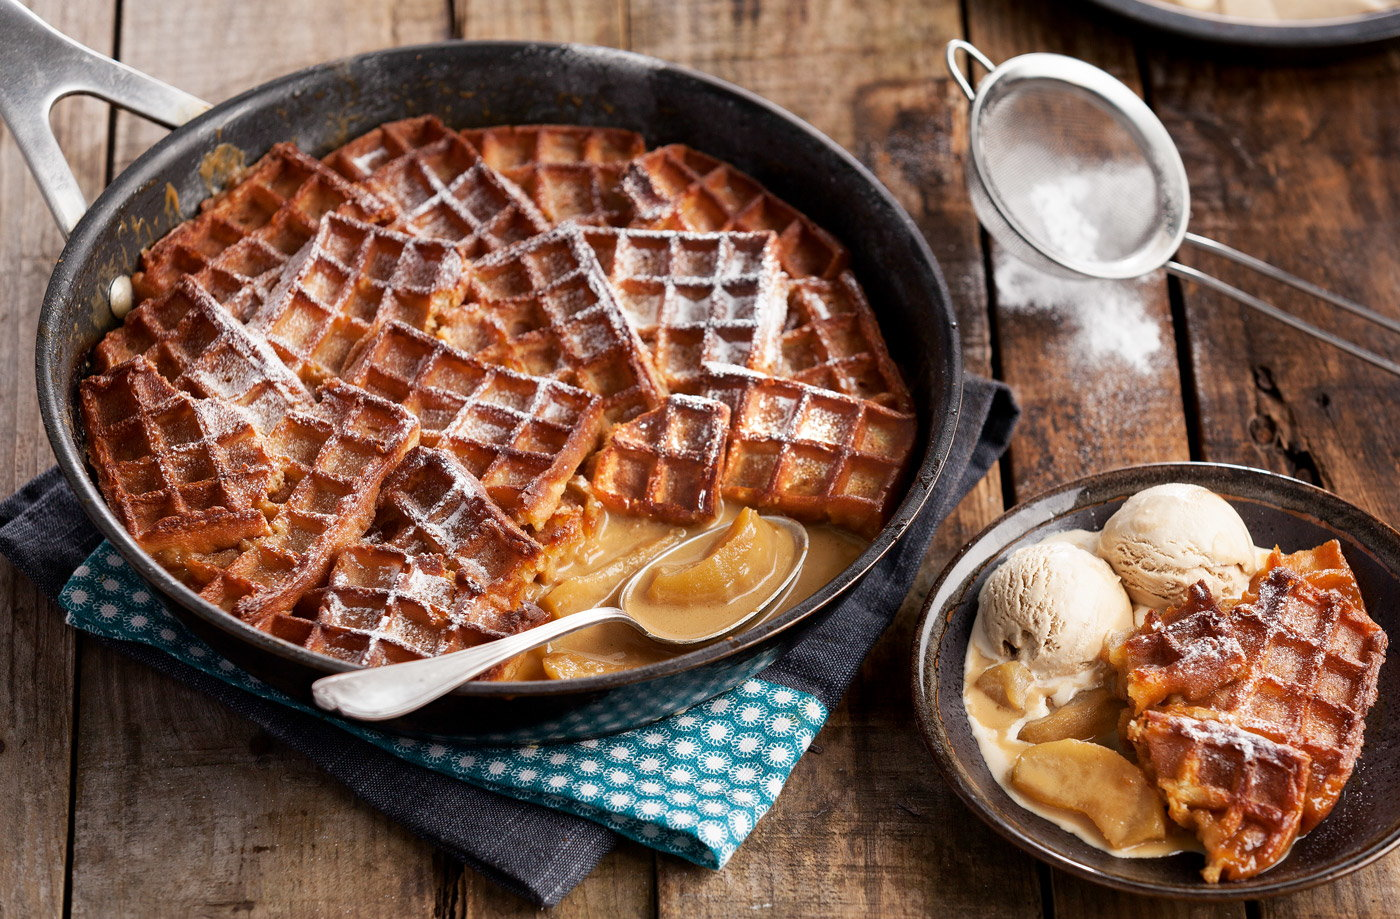 Toffee Apple Waffle Pudding